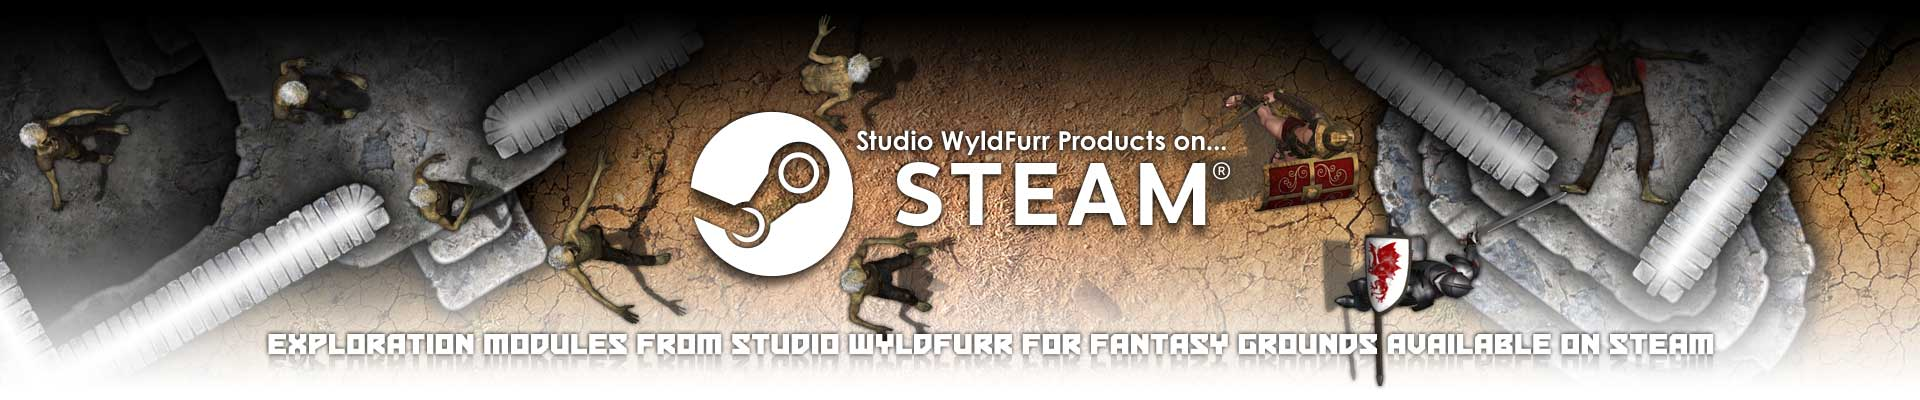 Studio WyldFurr Products on Steam